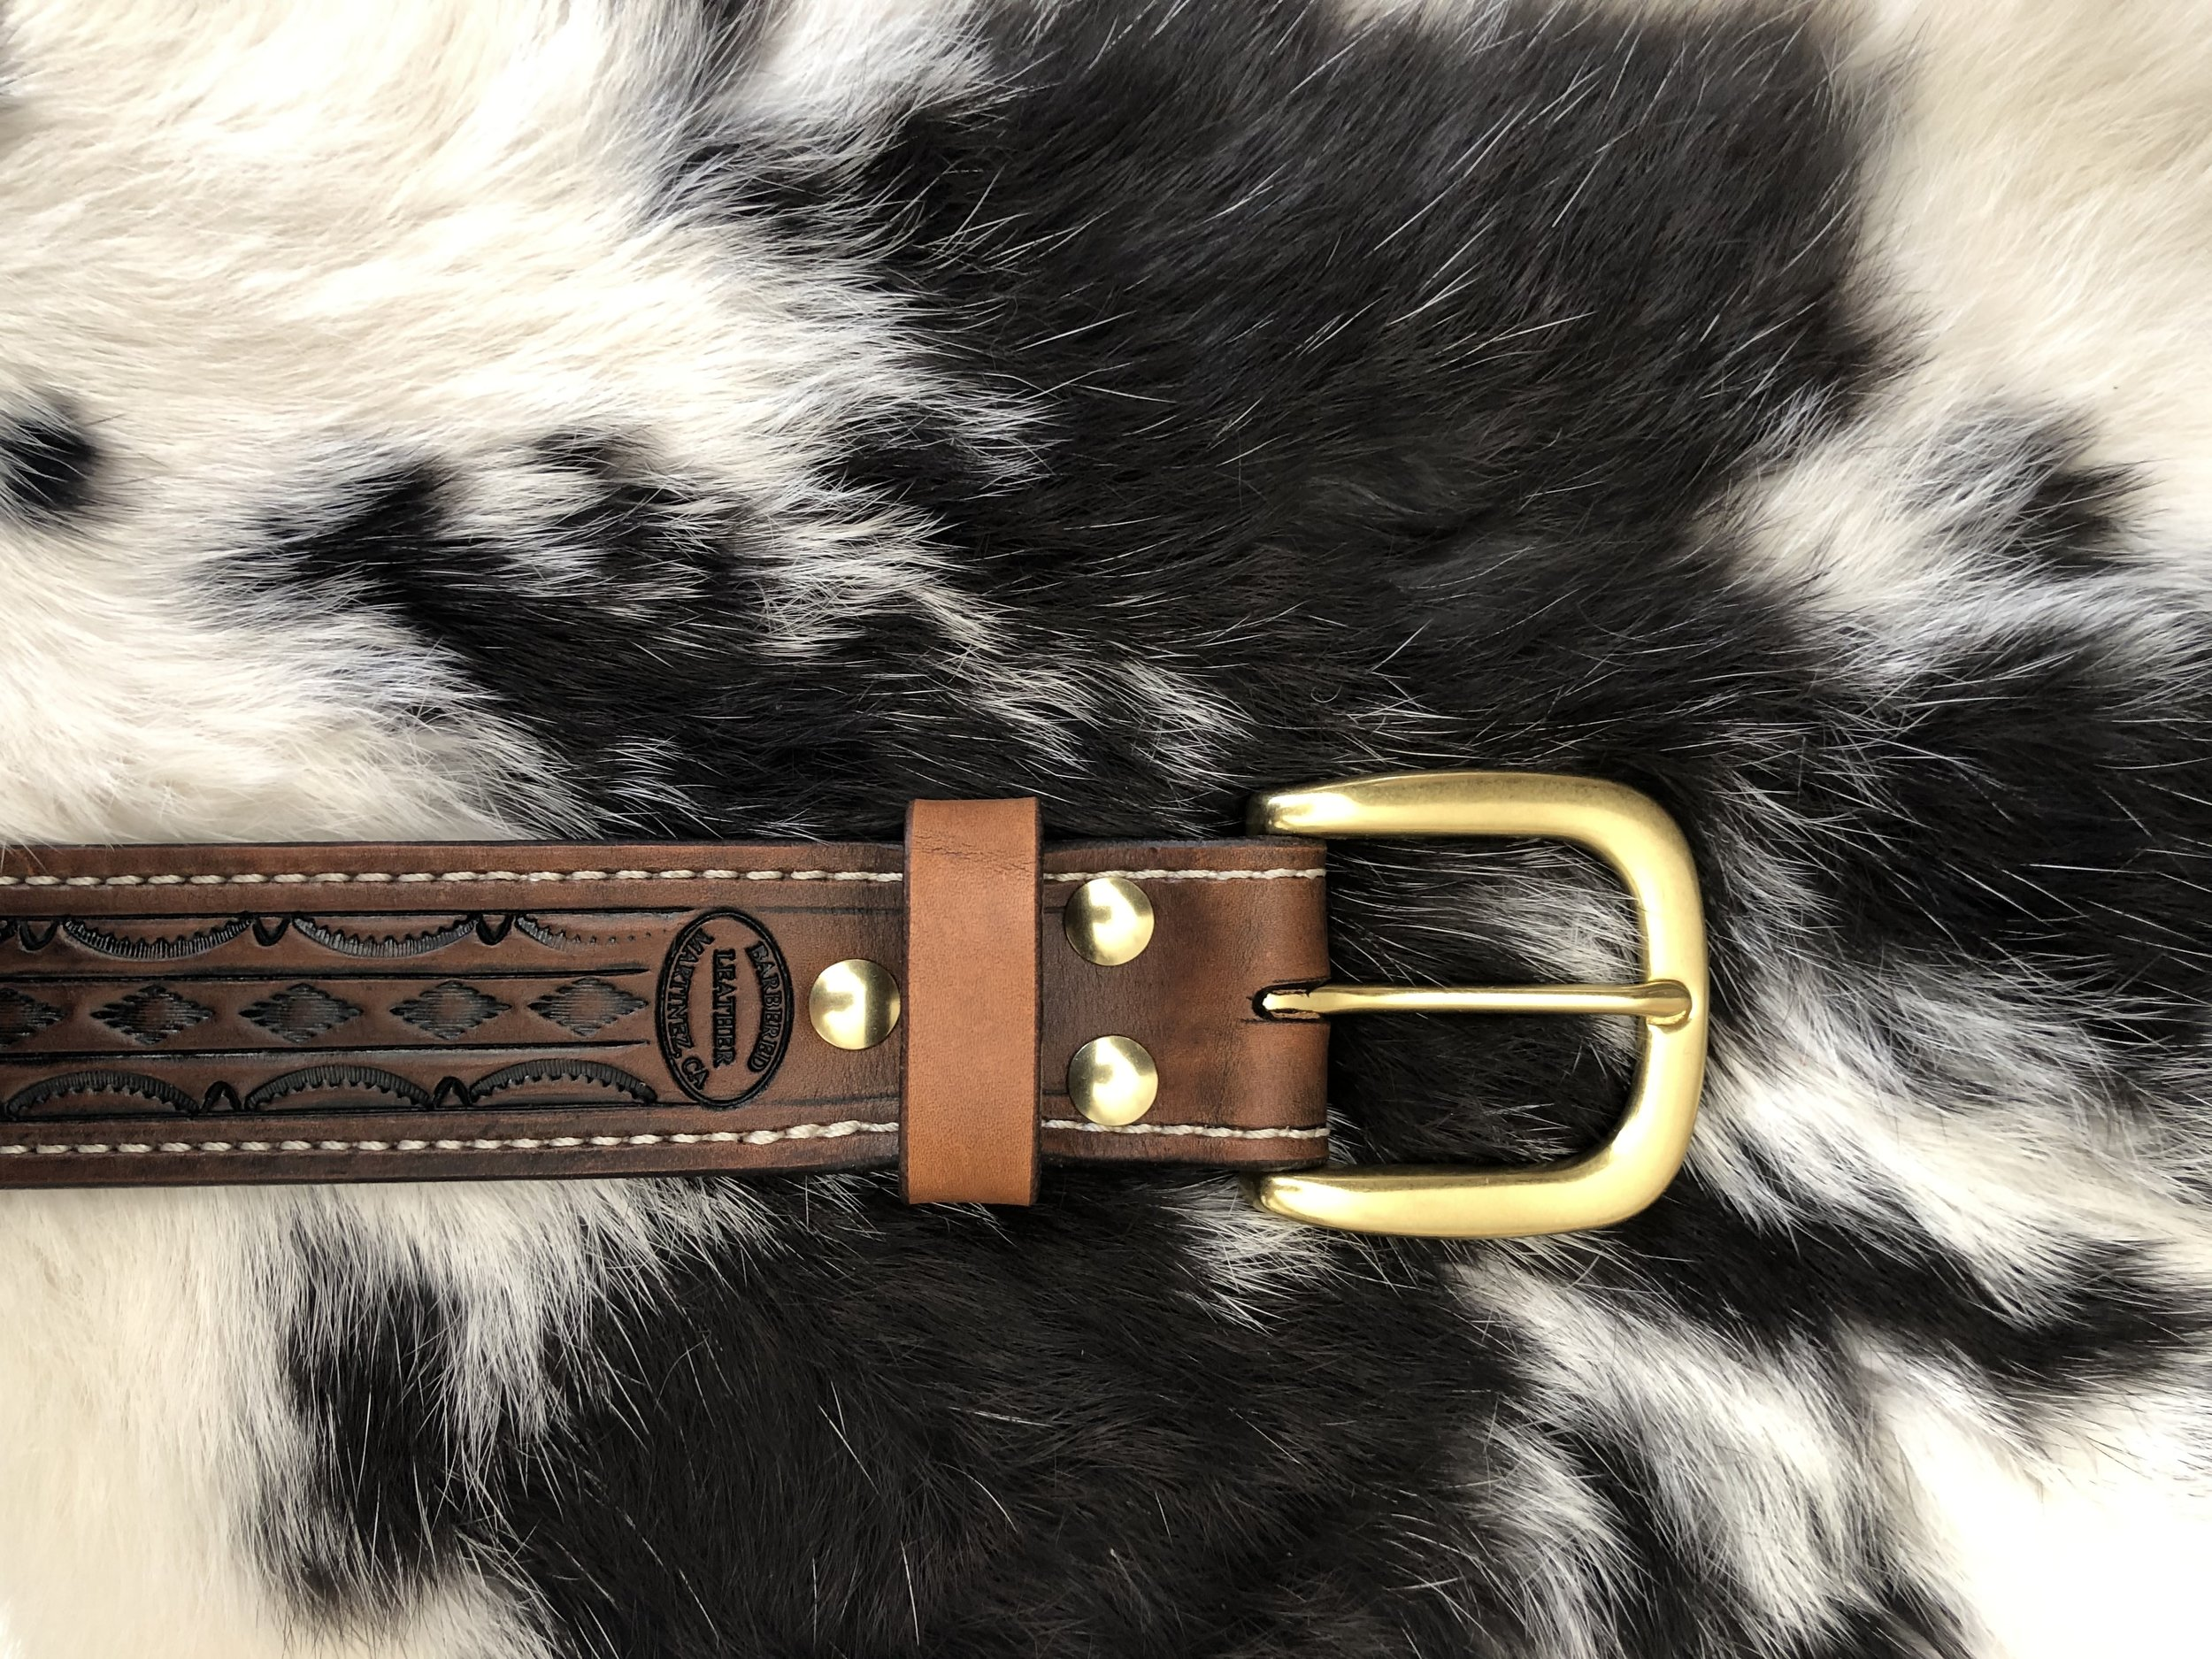 An  Antiqued  premium belt in  Pattern XXX  with a  White Stitch  and a  Heel Bar Round buckle in Brass .  Chicago Screw in Brass  as the fastener.